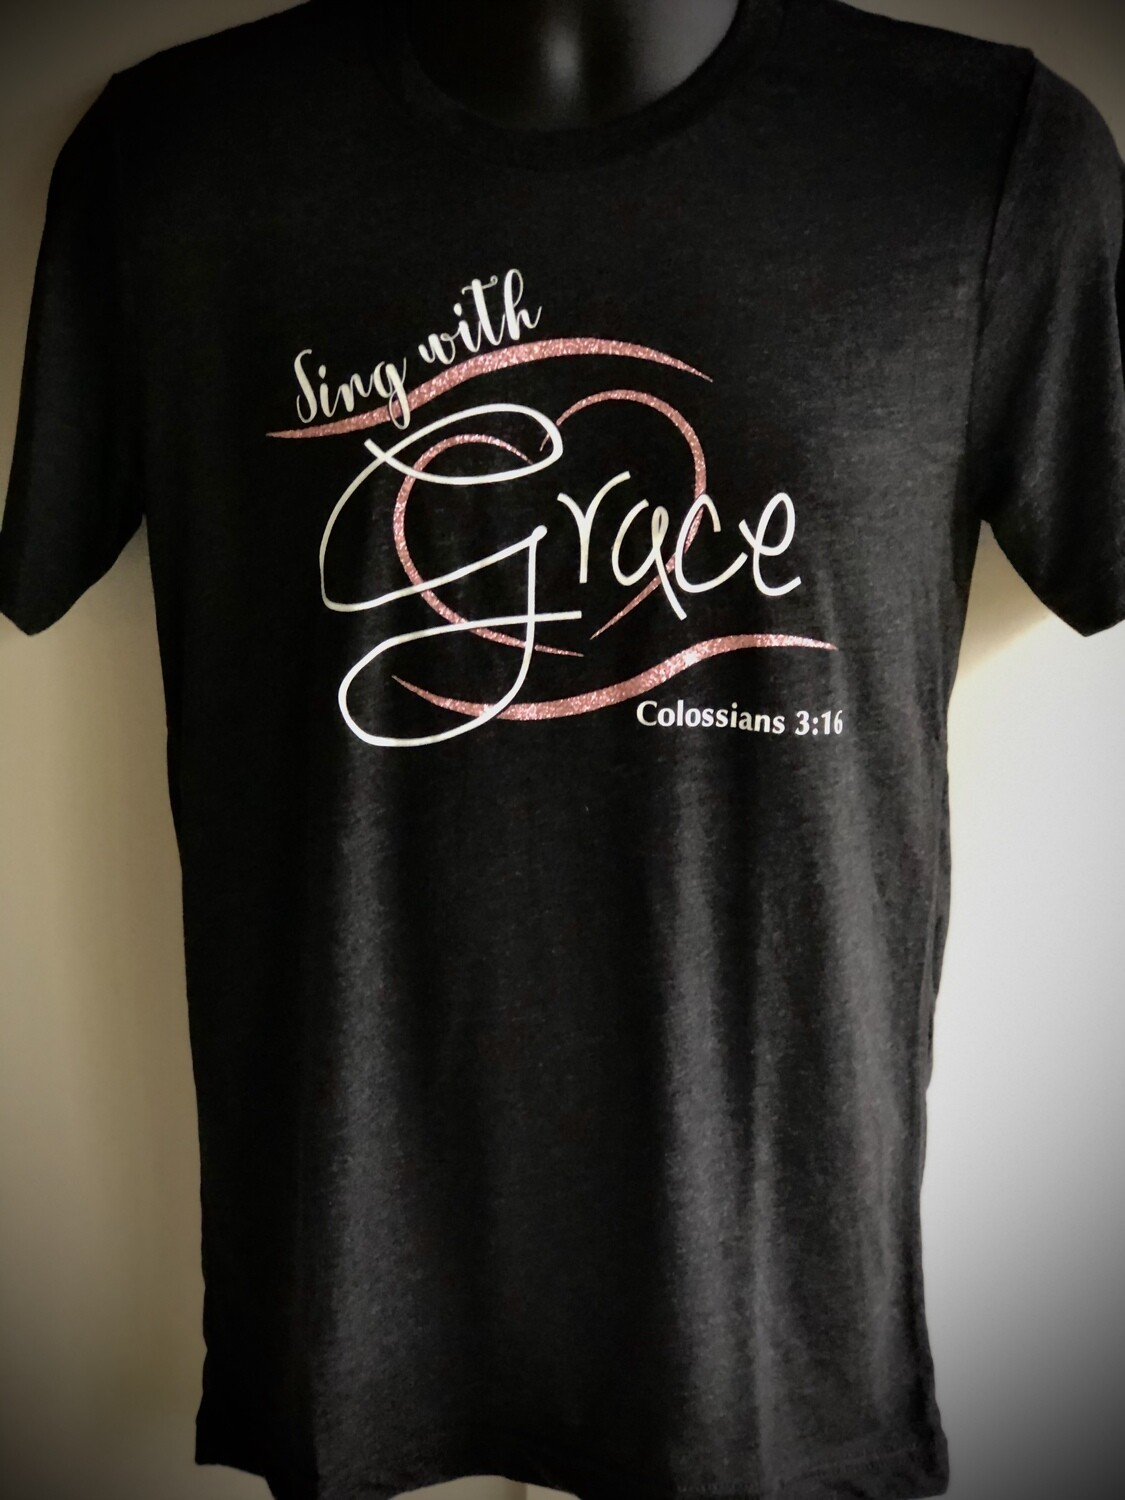 Sing with Grace (T-Shirt)